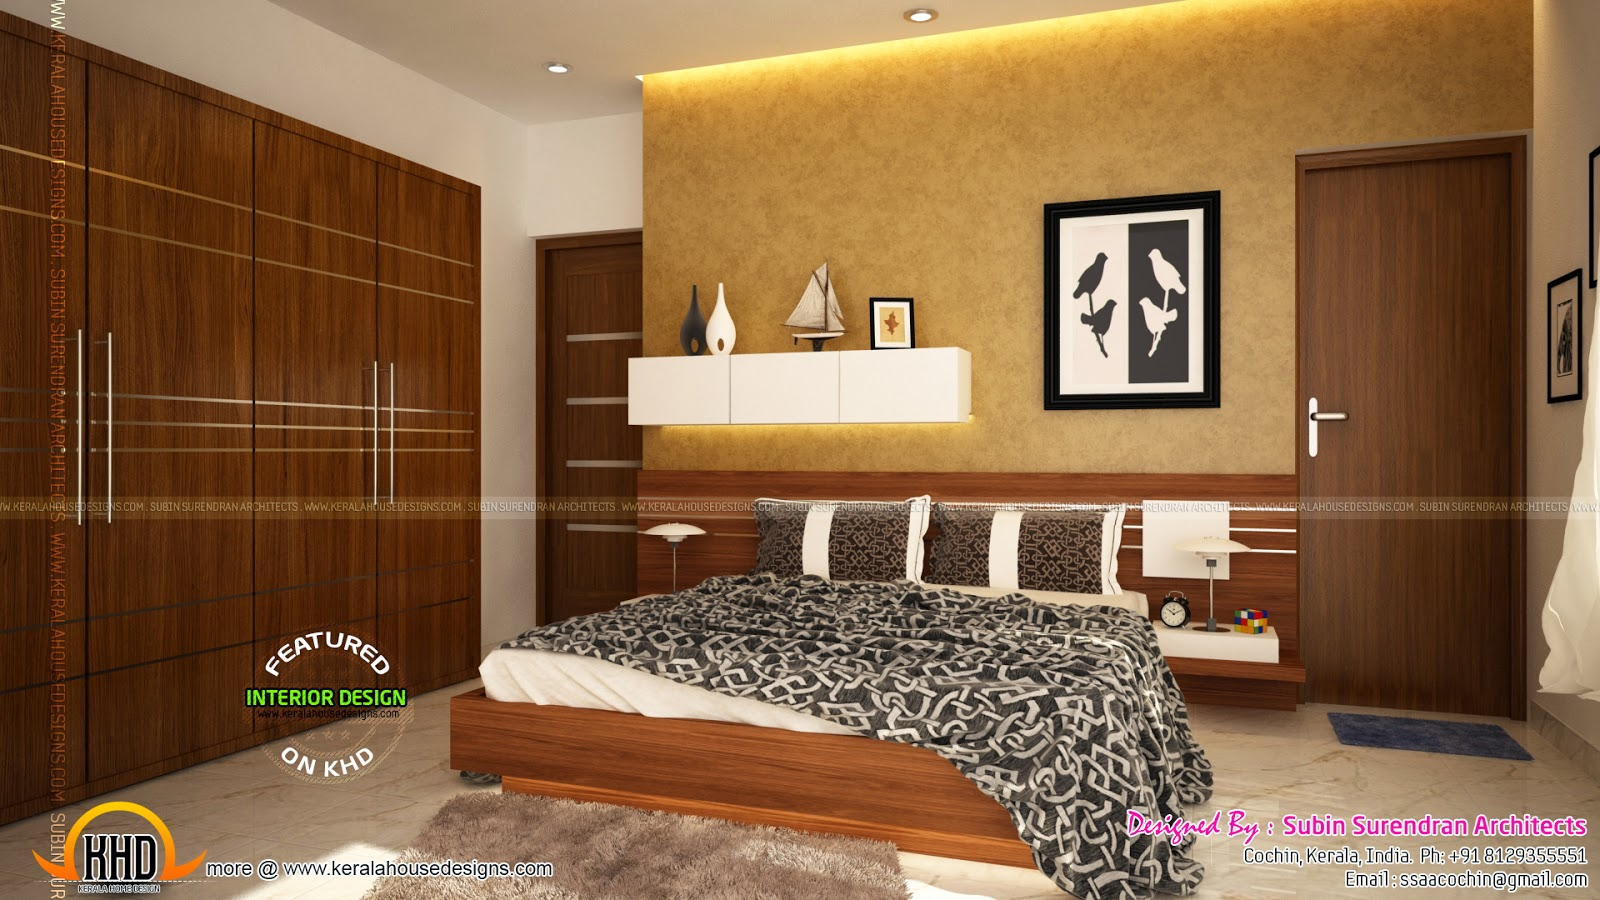 Kerala style low cost double storied home keralahousedesigns for Bedroom interior design photos